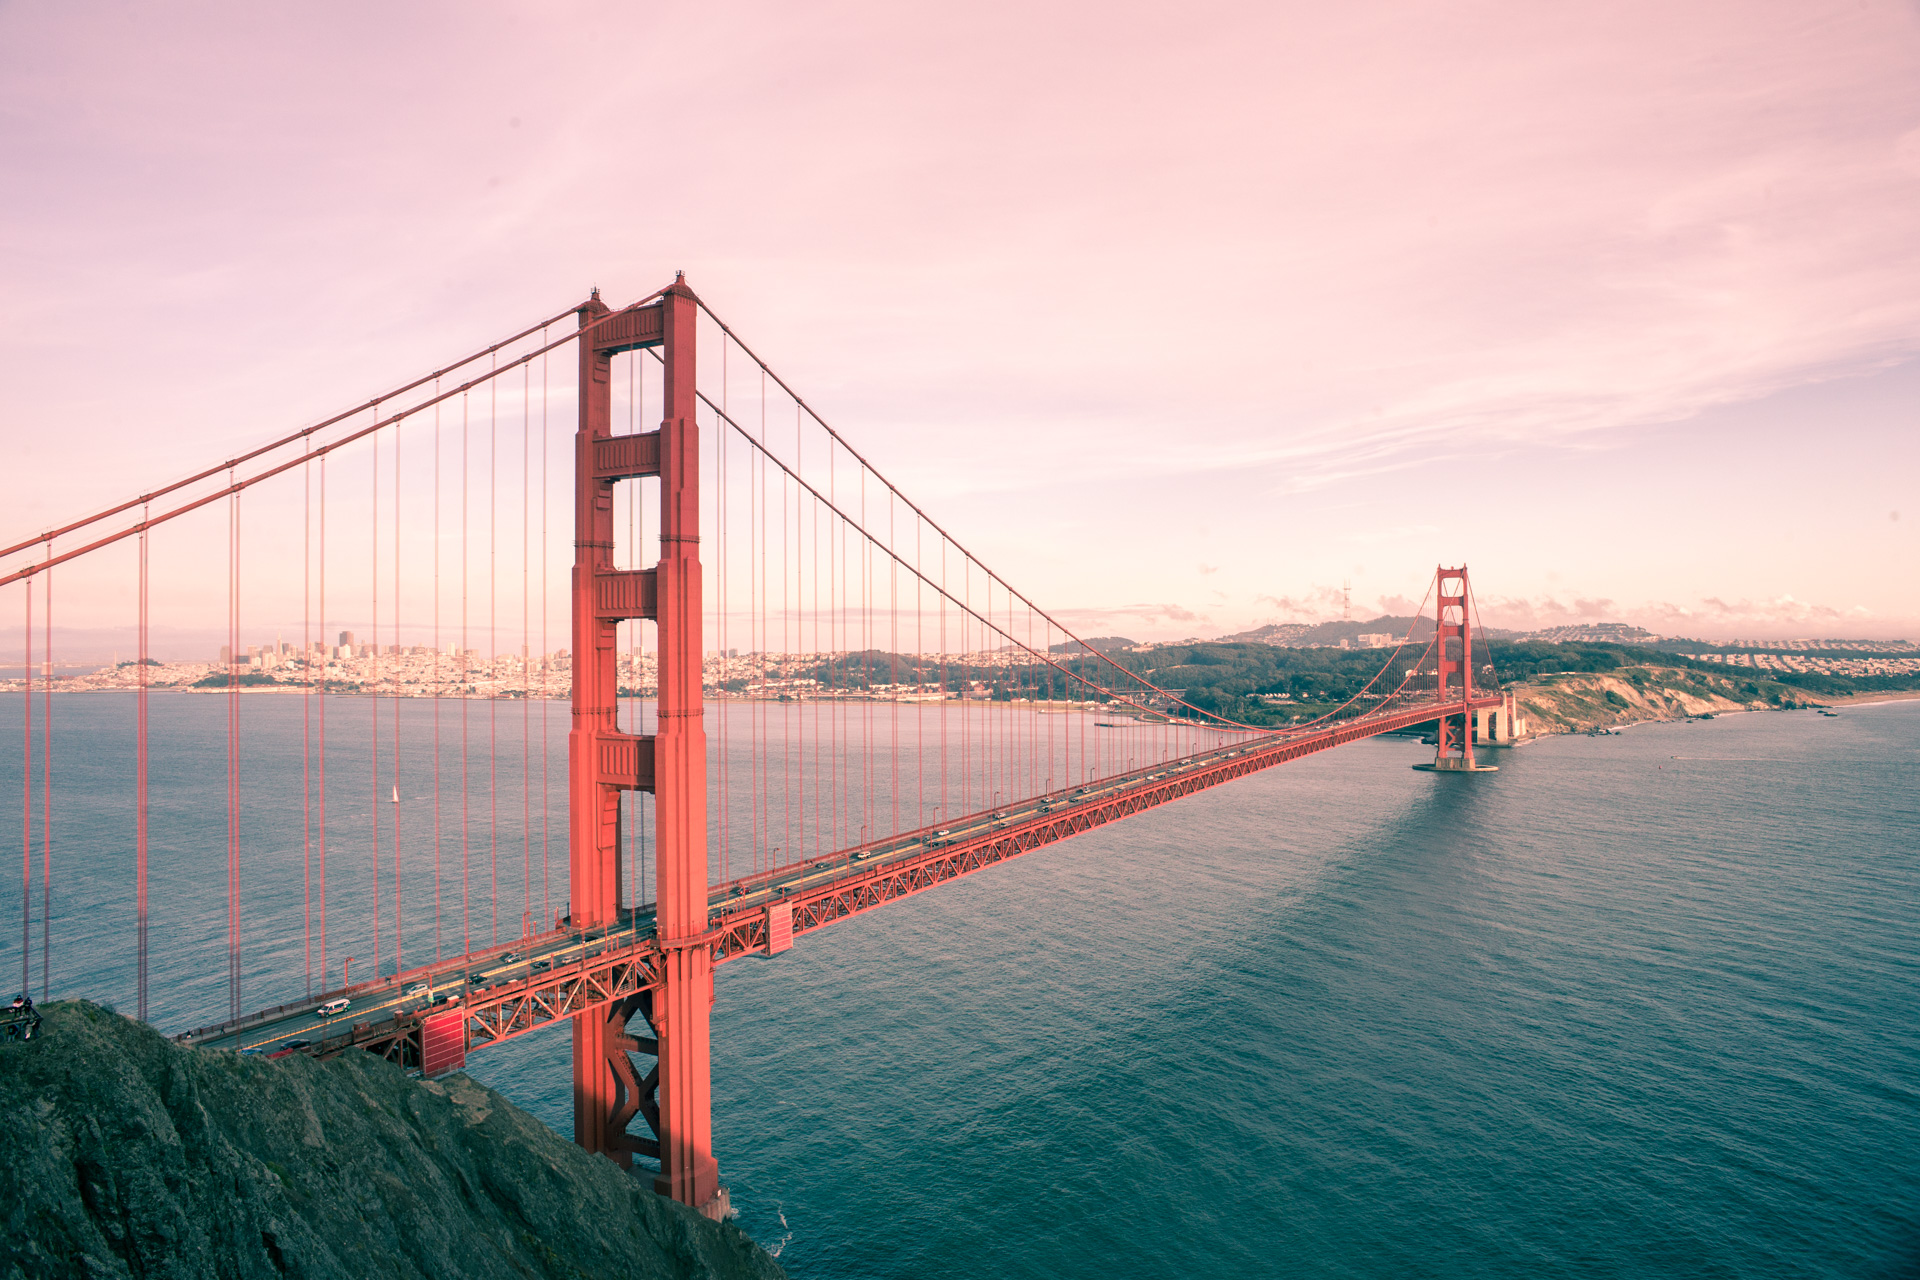 Sunset across the Golden Gate, with hints of rose.